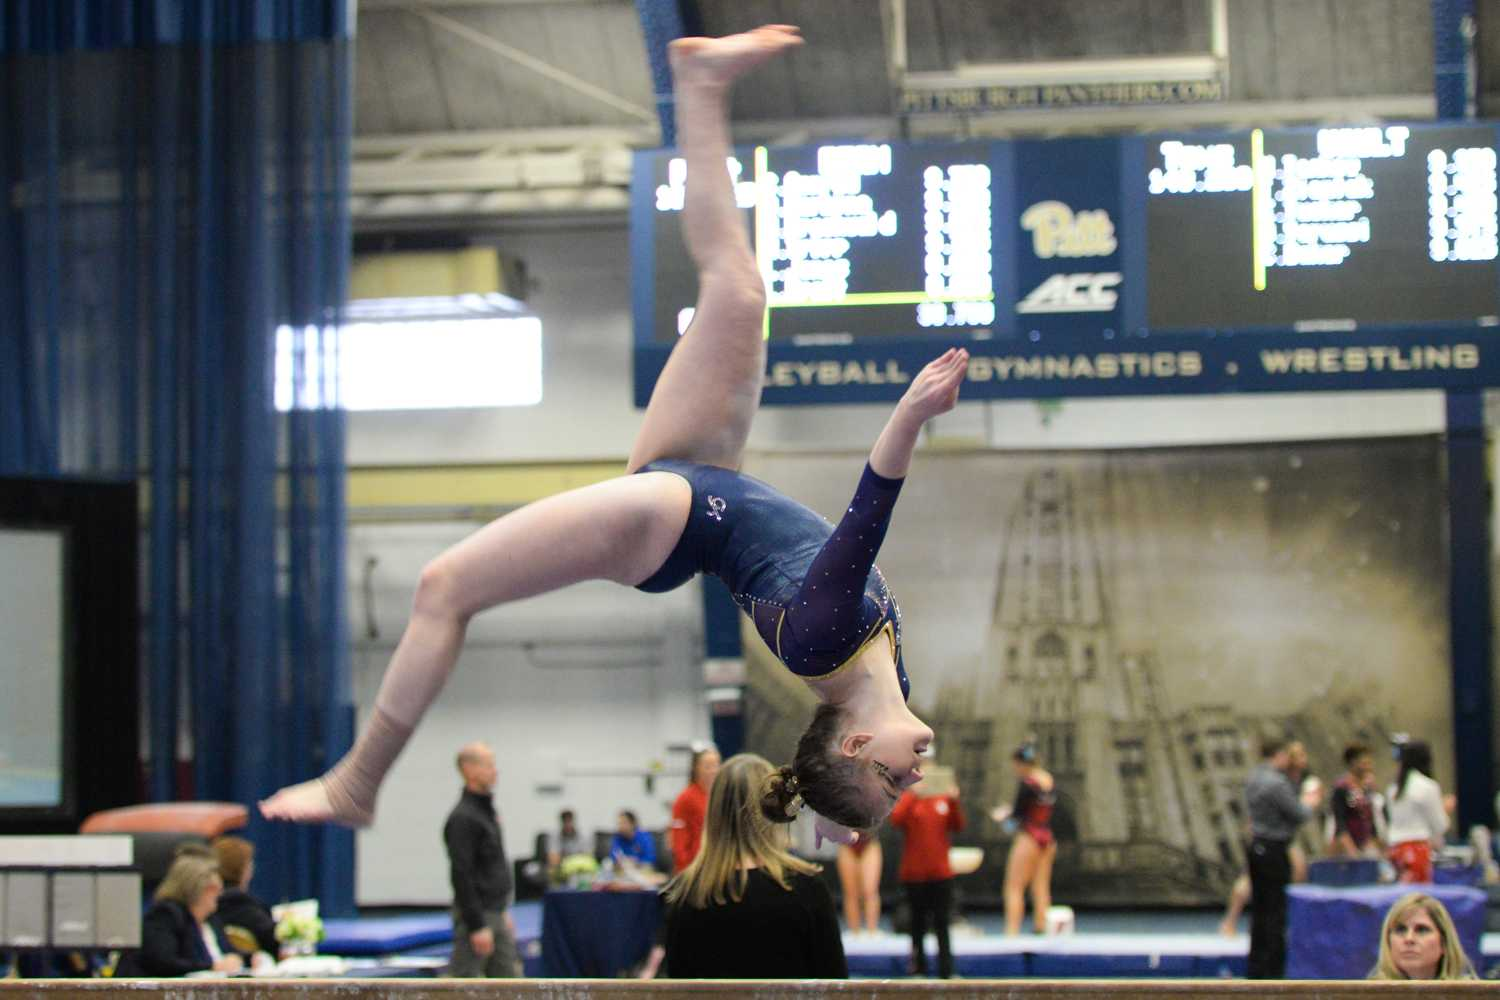 Sophomore Lucy Jones completes a back aerial while competing on beam during Saturday's quad meet at Pitt. (Photo by John Hamilton | Managing Editor)